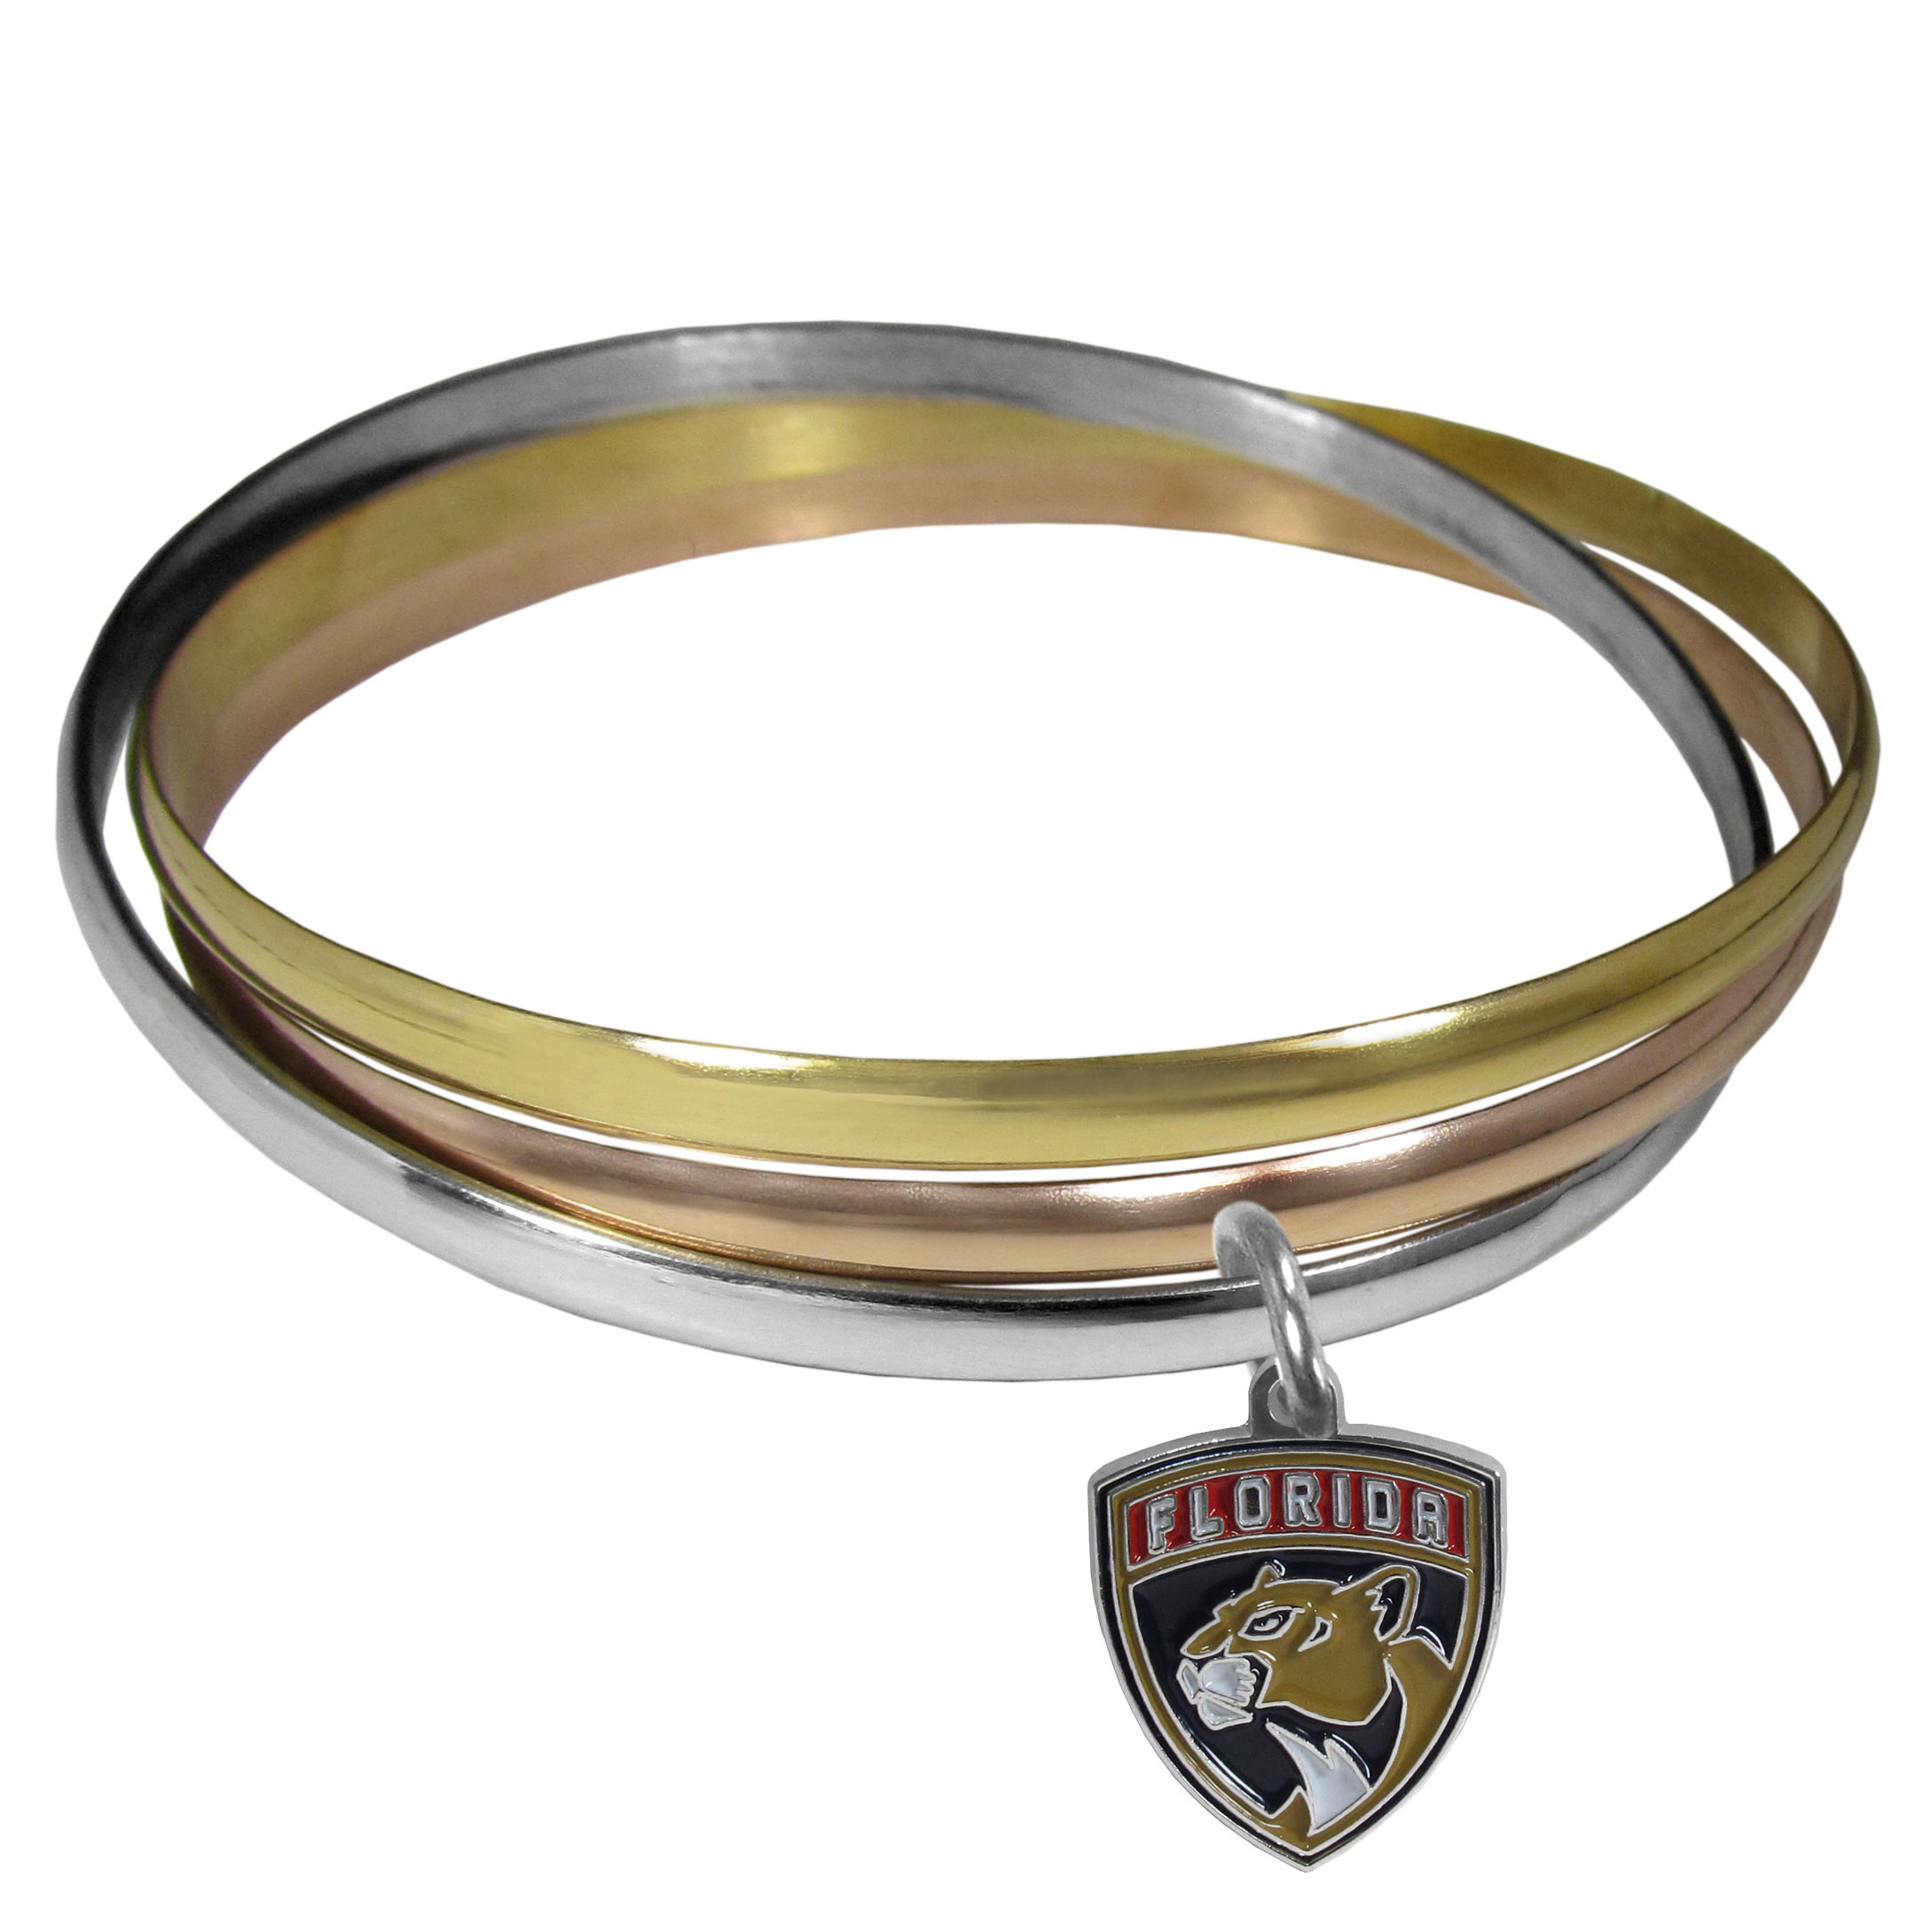 Florida Panthers® Tri-color Bangle Bracelet - These beautiful bangles come in a interlocking style and feature a fully cast Florida Panthers® charm with enameled team colors. The bracelet has a silver toned bangle, gold tone bangle and brass toned bangle.